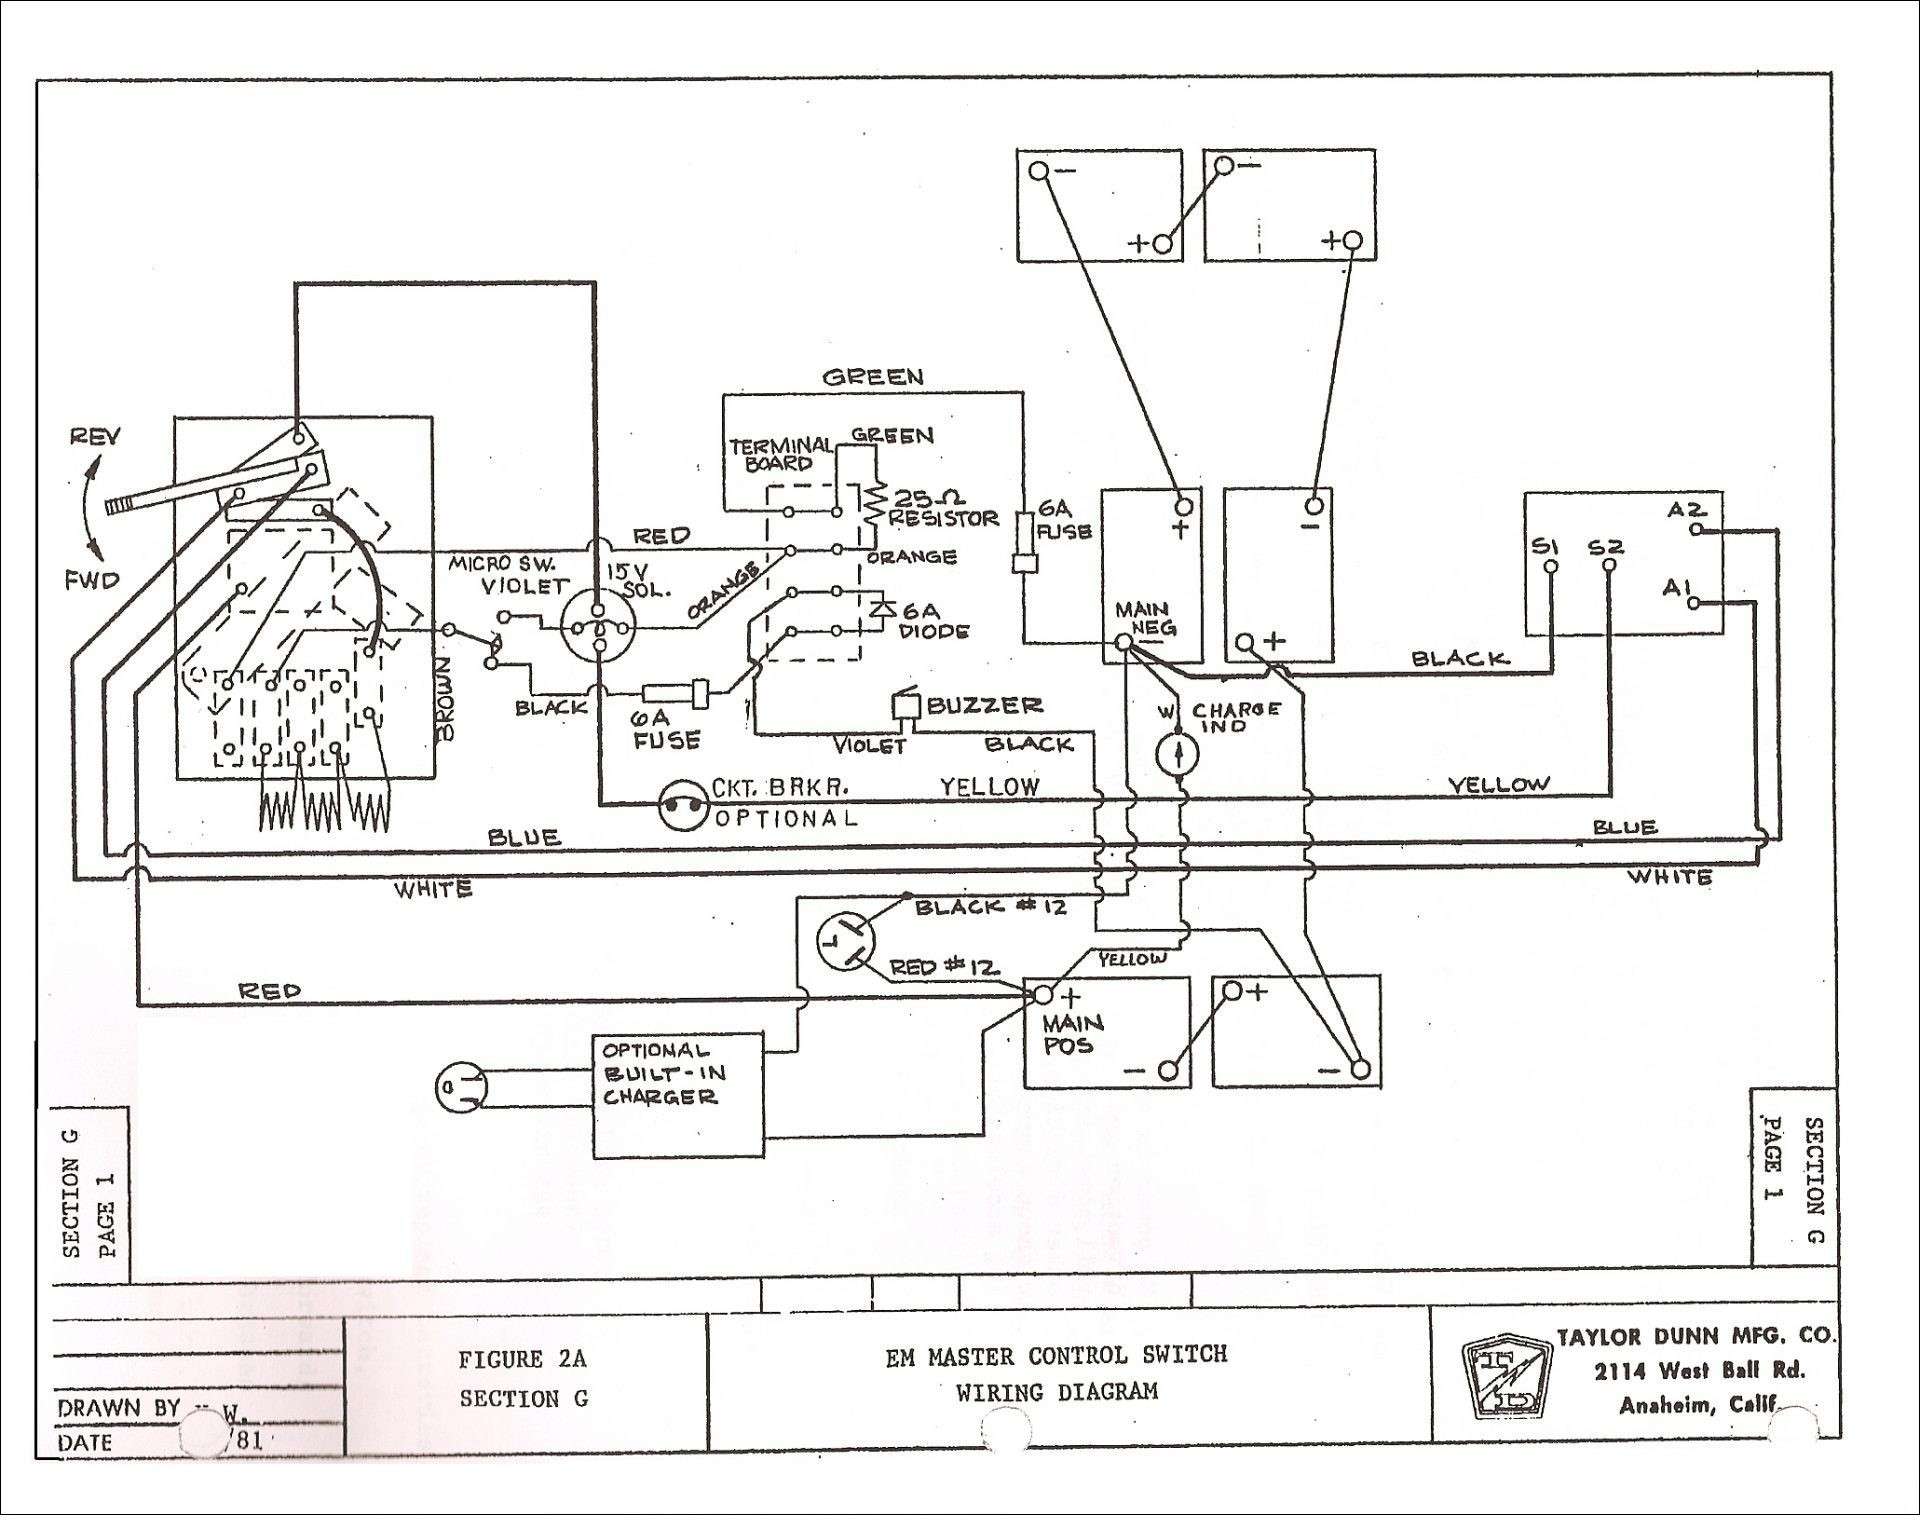 DIAGRAM] 1994 95 Ezgo Wiring Diagram FULL Version HD Quality Wiring Diagram  - REALDIAGRAM.PACHUKA.ITpachuka.it